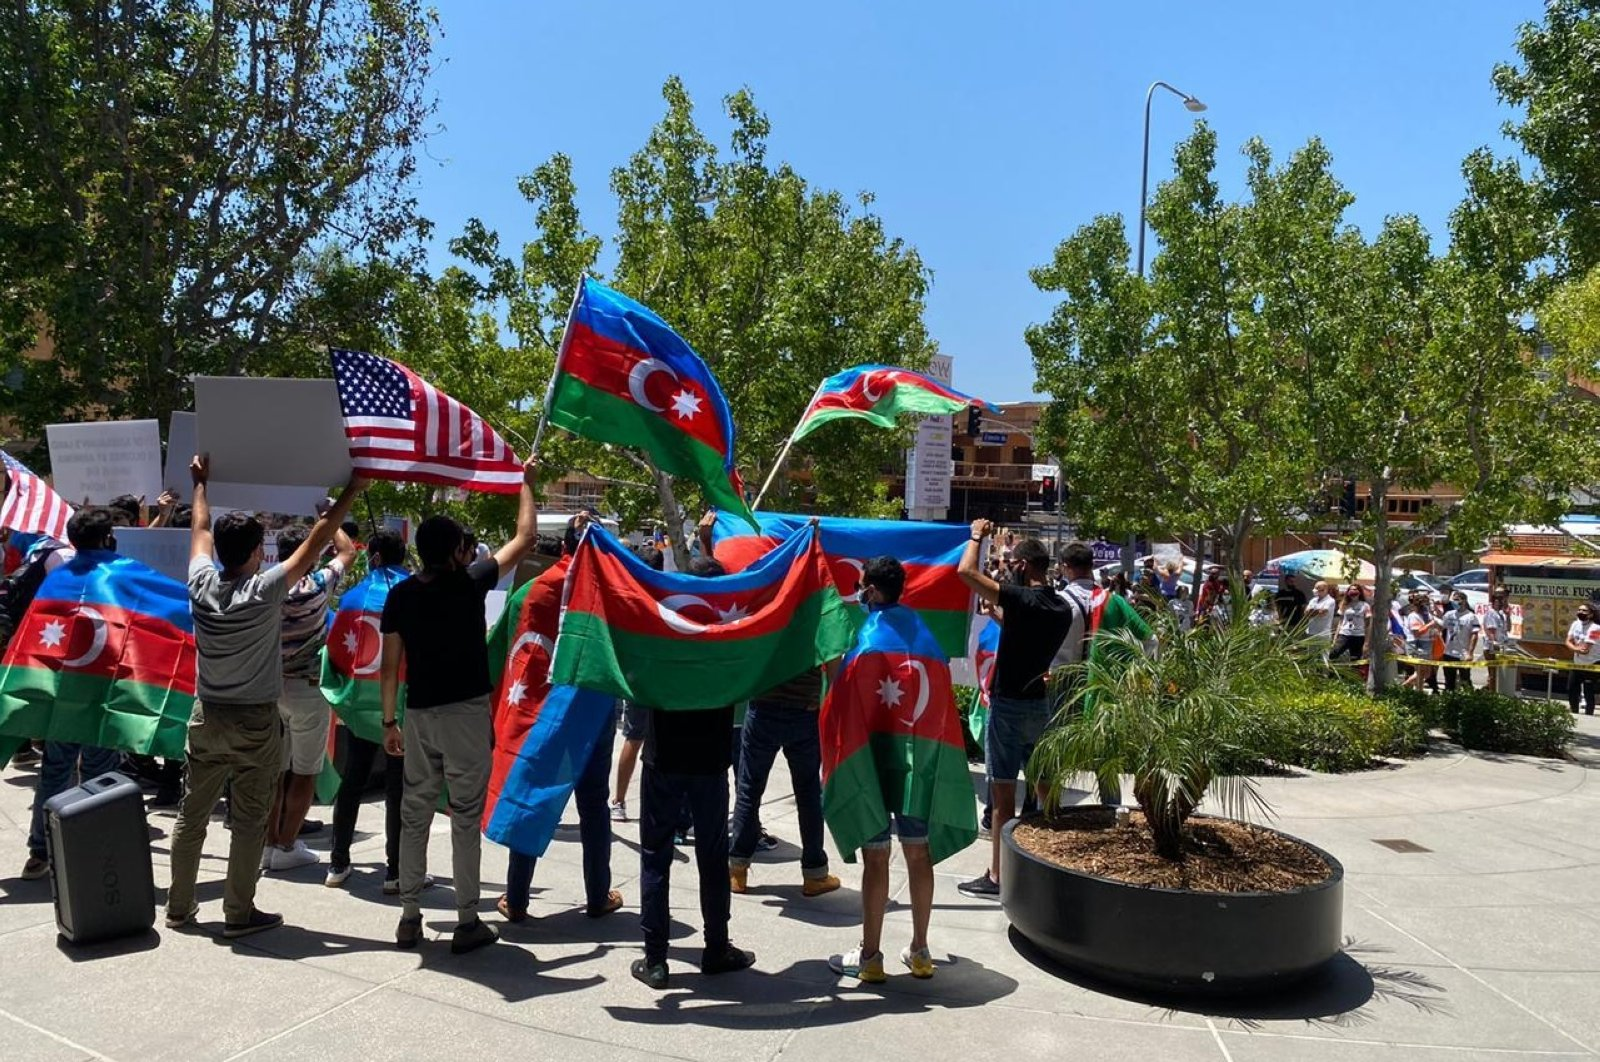 Azerbaijanis during a protest in Los Angeles, California, U.S., July 22, 2020 (AA Photo)